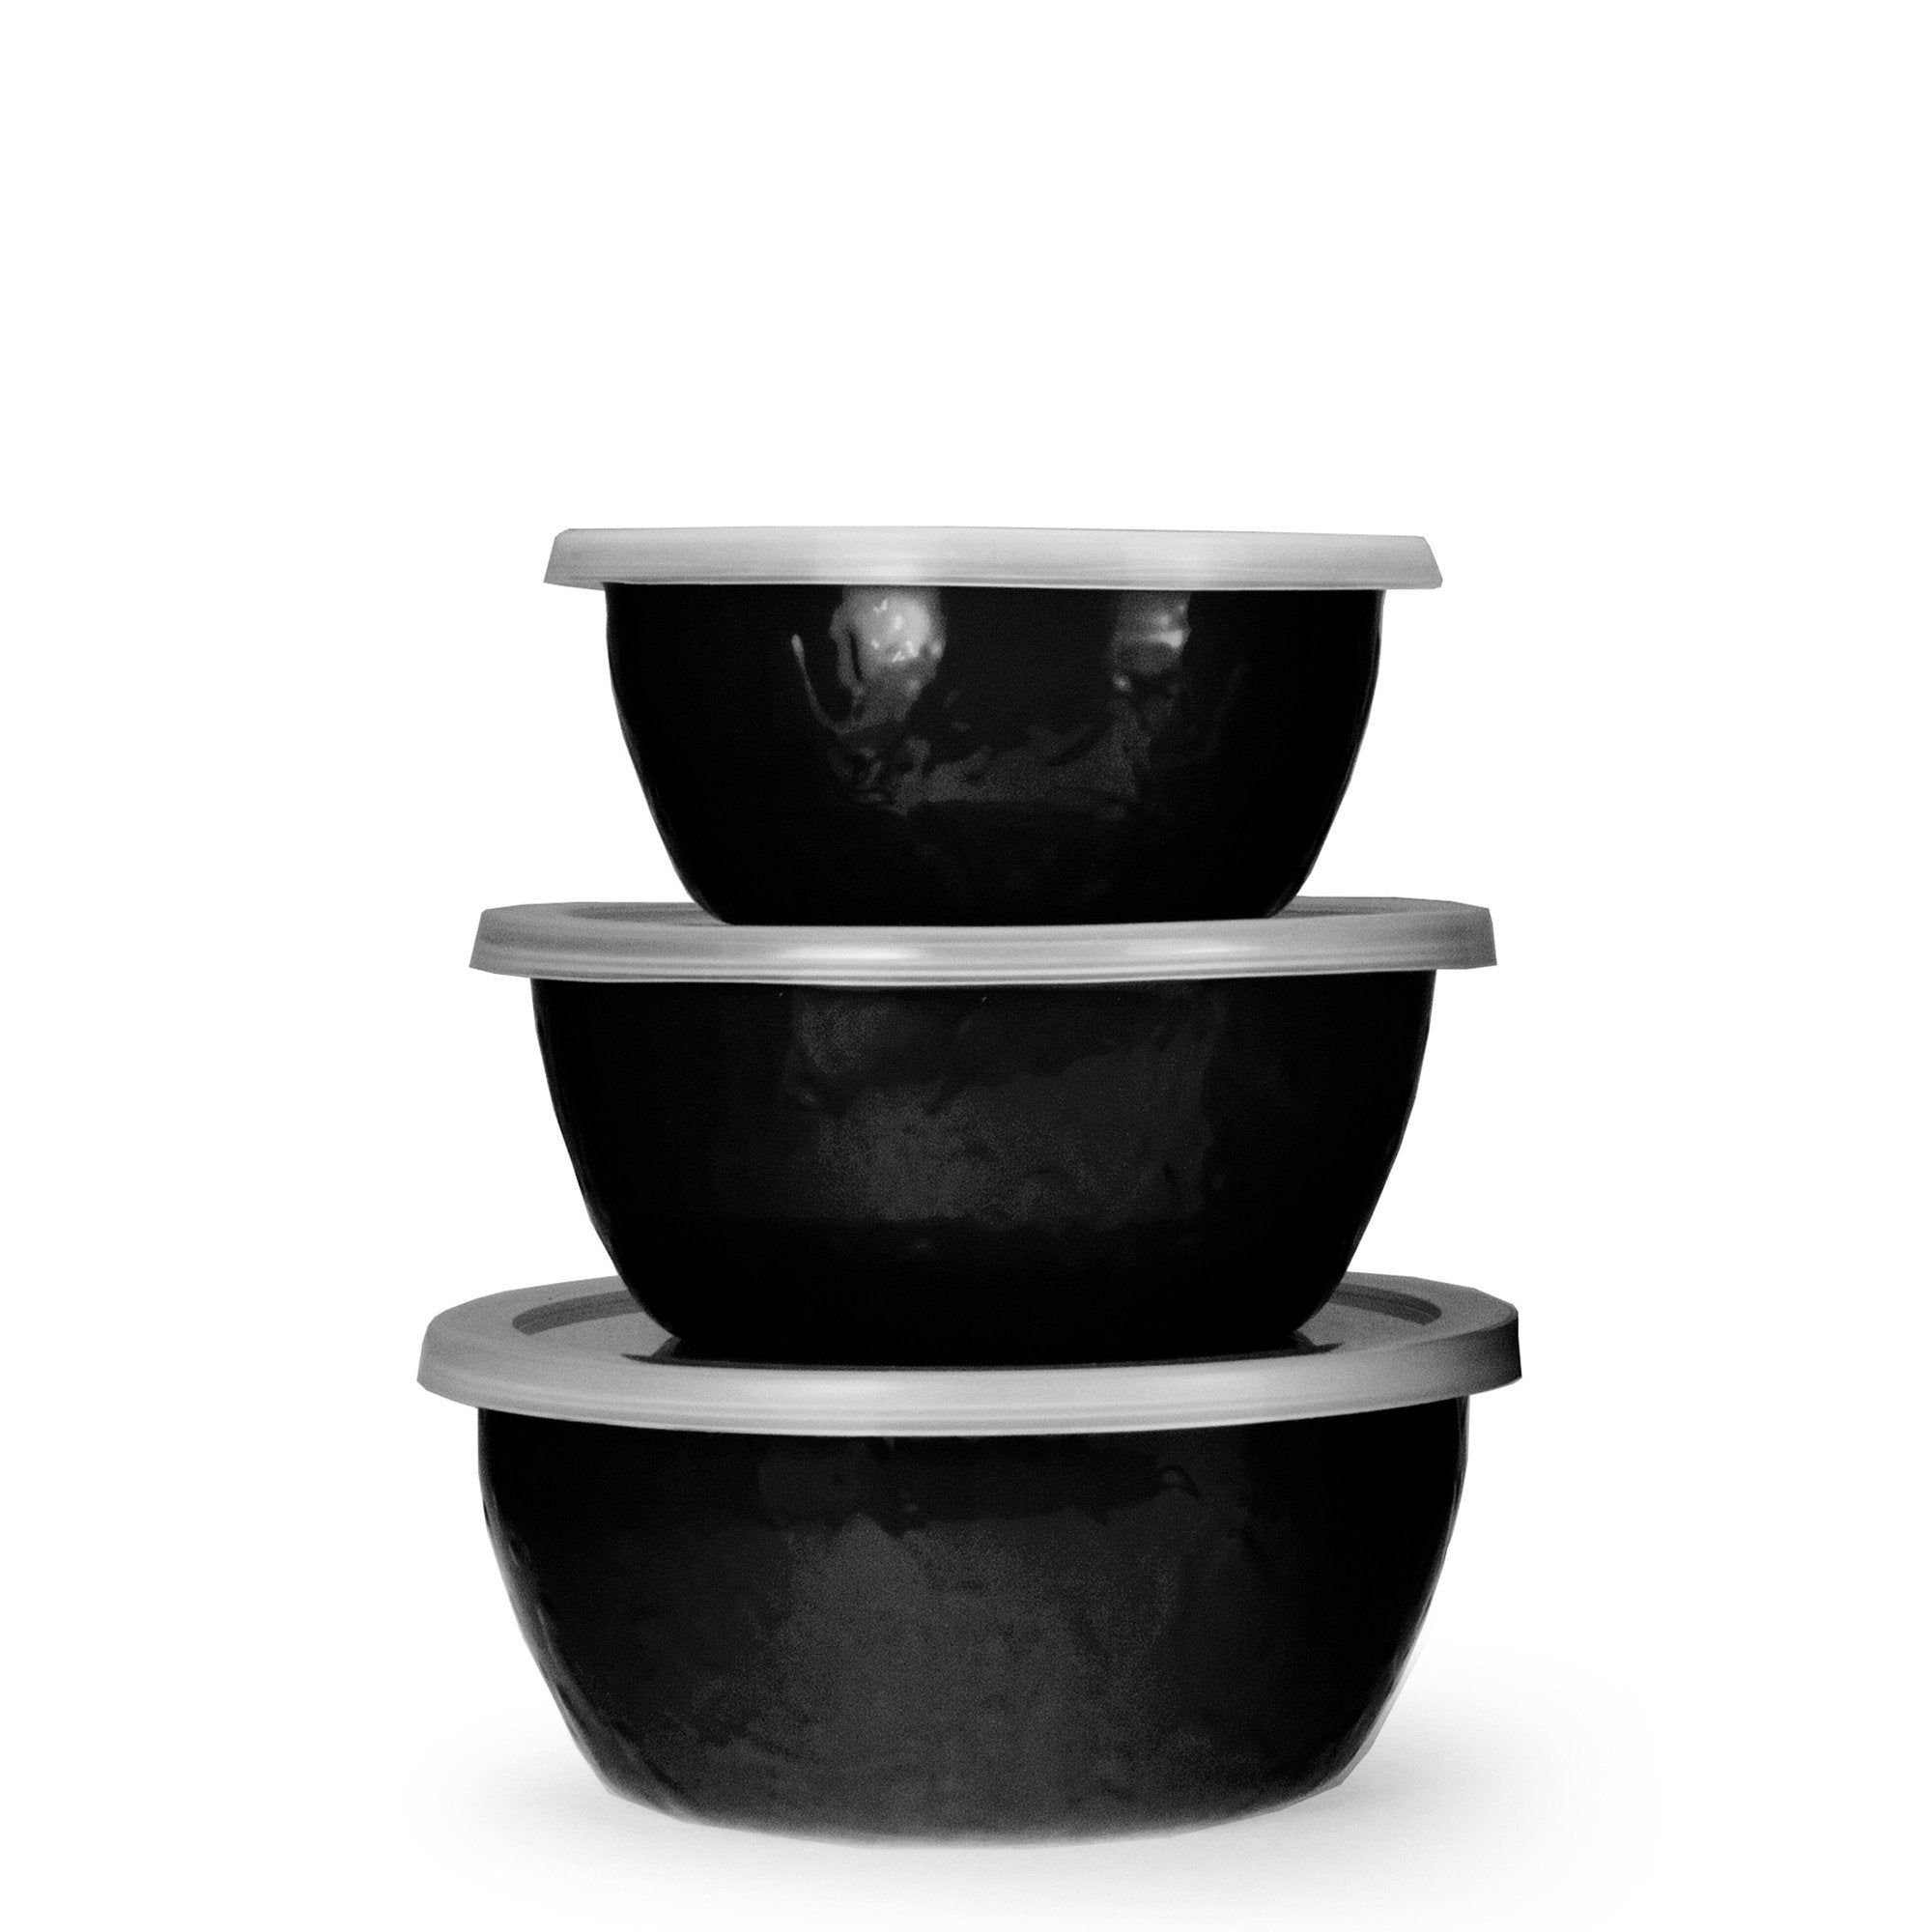 BK30 - Black on Black - Set of 3 Nesting Bowls by Golden Rabbit